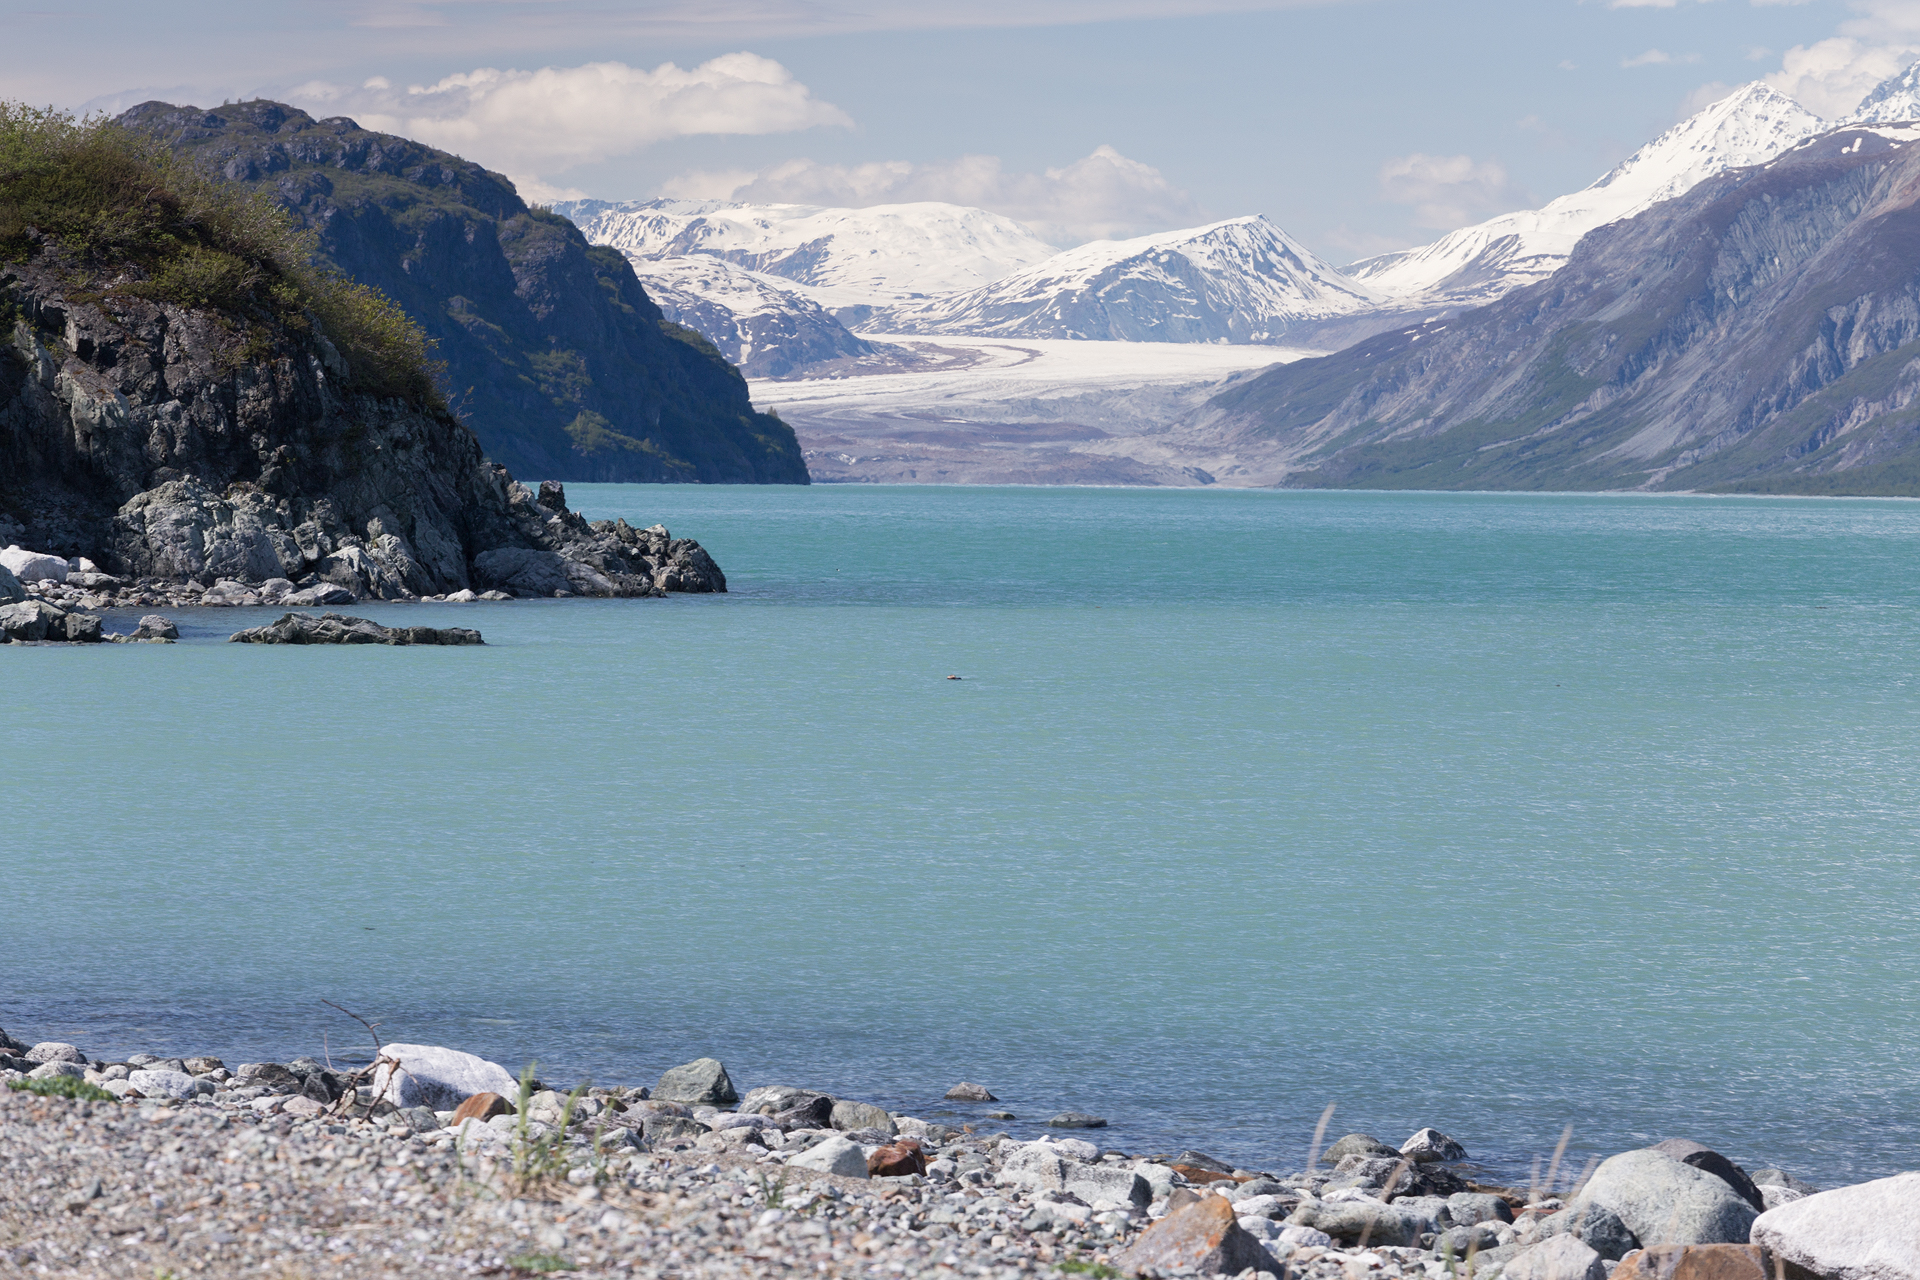 Glacier Bay National Park West Arm Kayaking Camping Trip-87.jpg